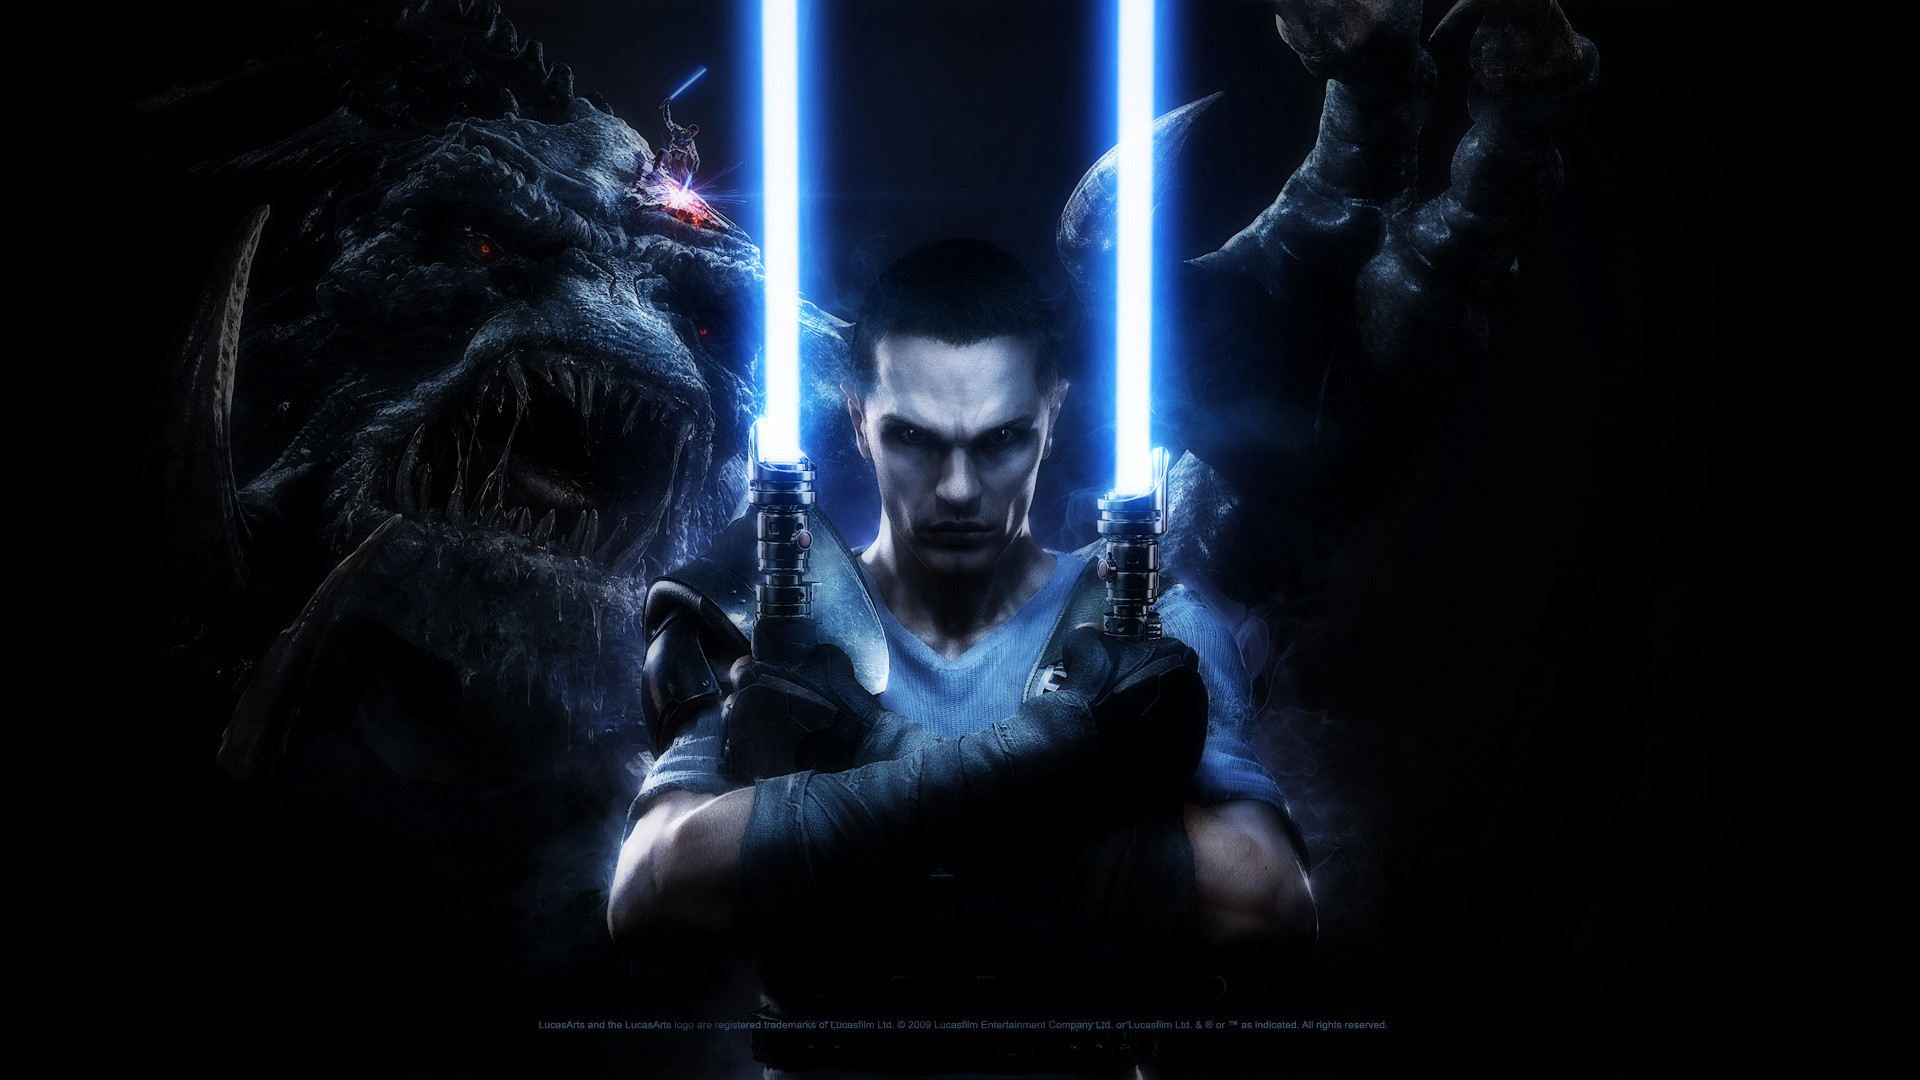 1920x1080 Star Wars Unleashed Wallpapers | HD Wallpapers